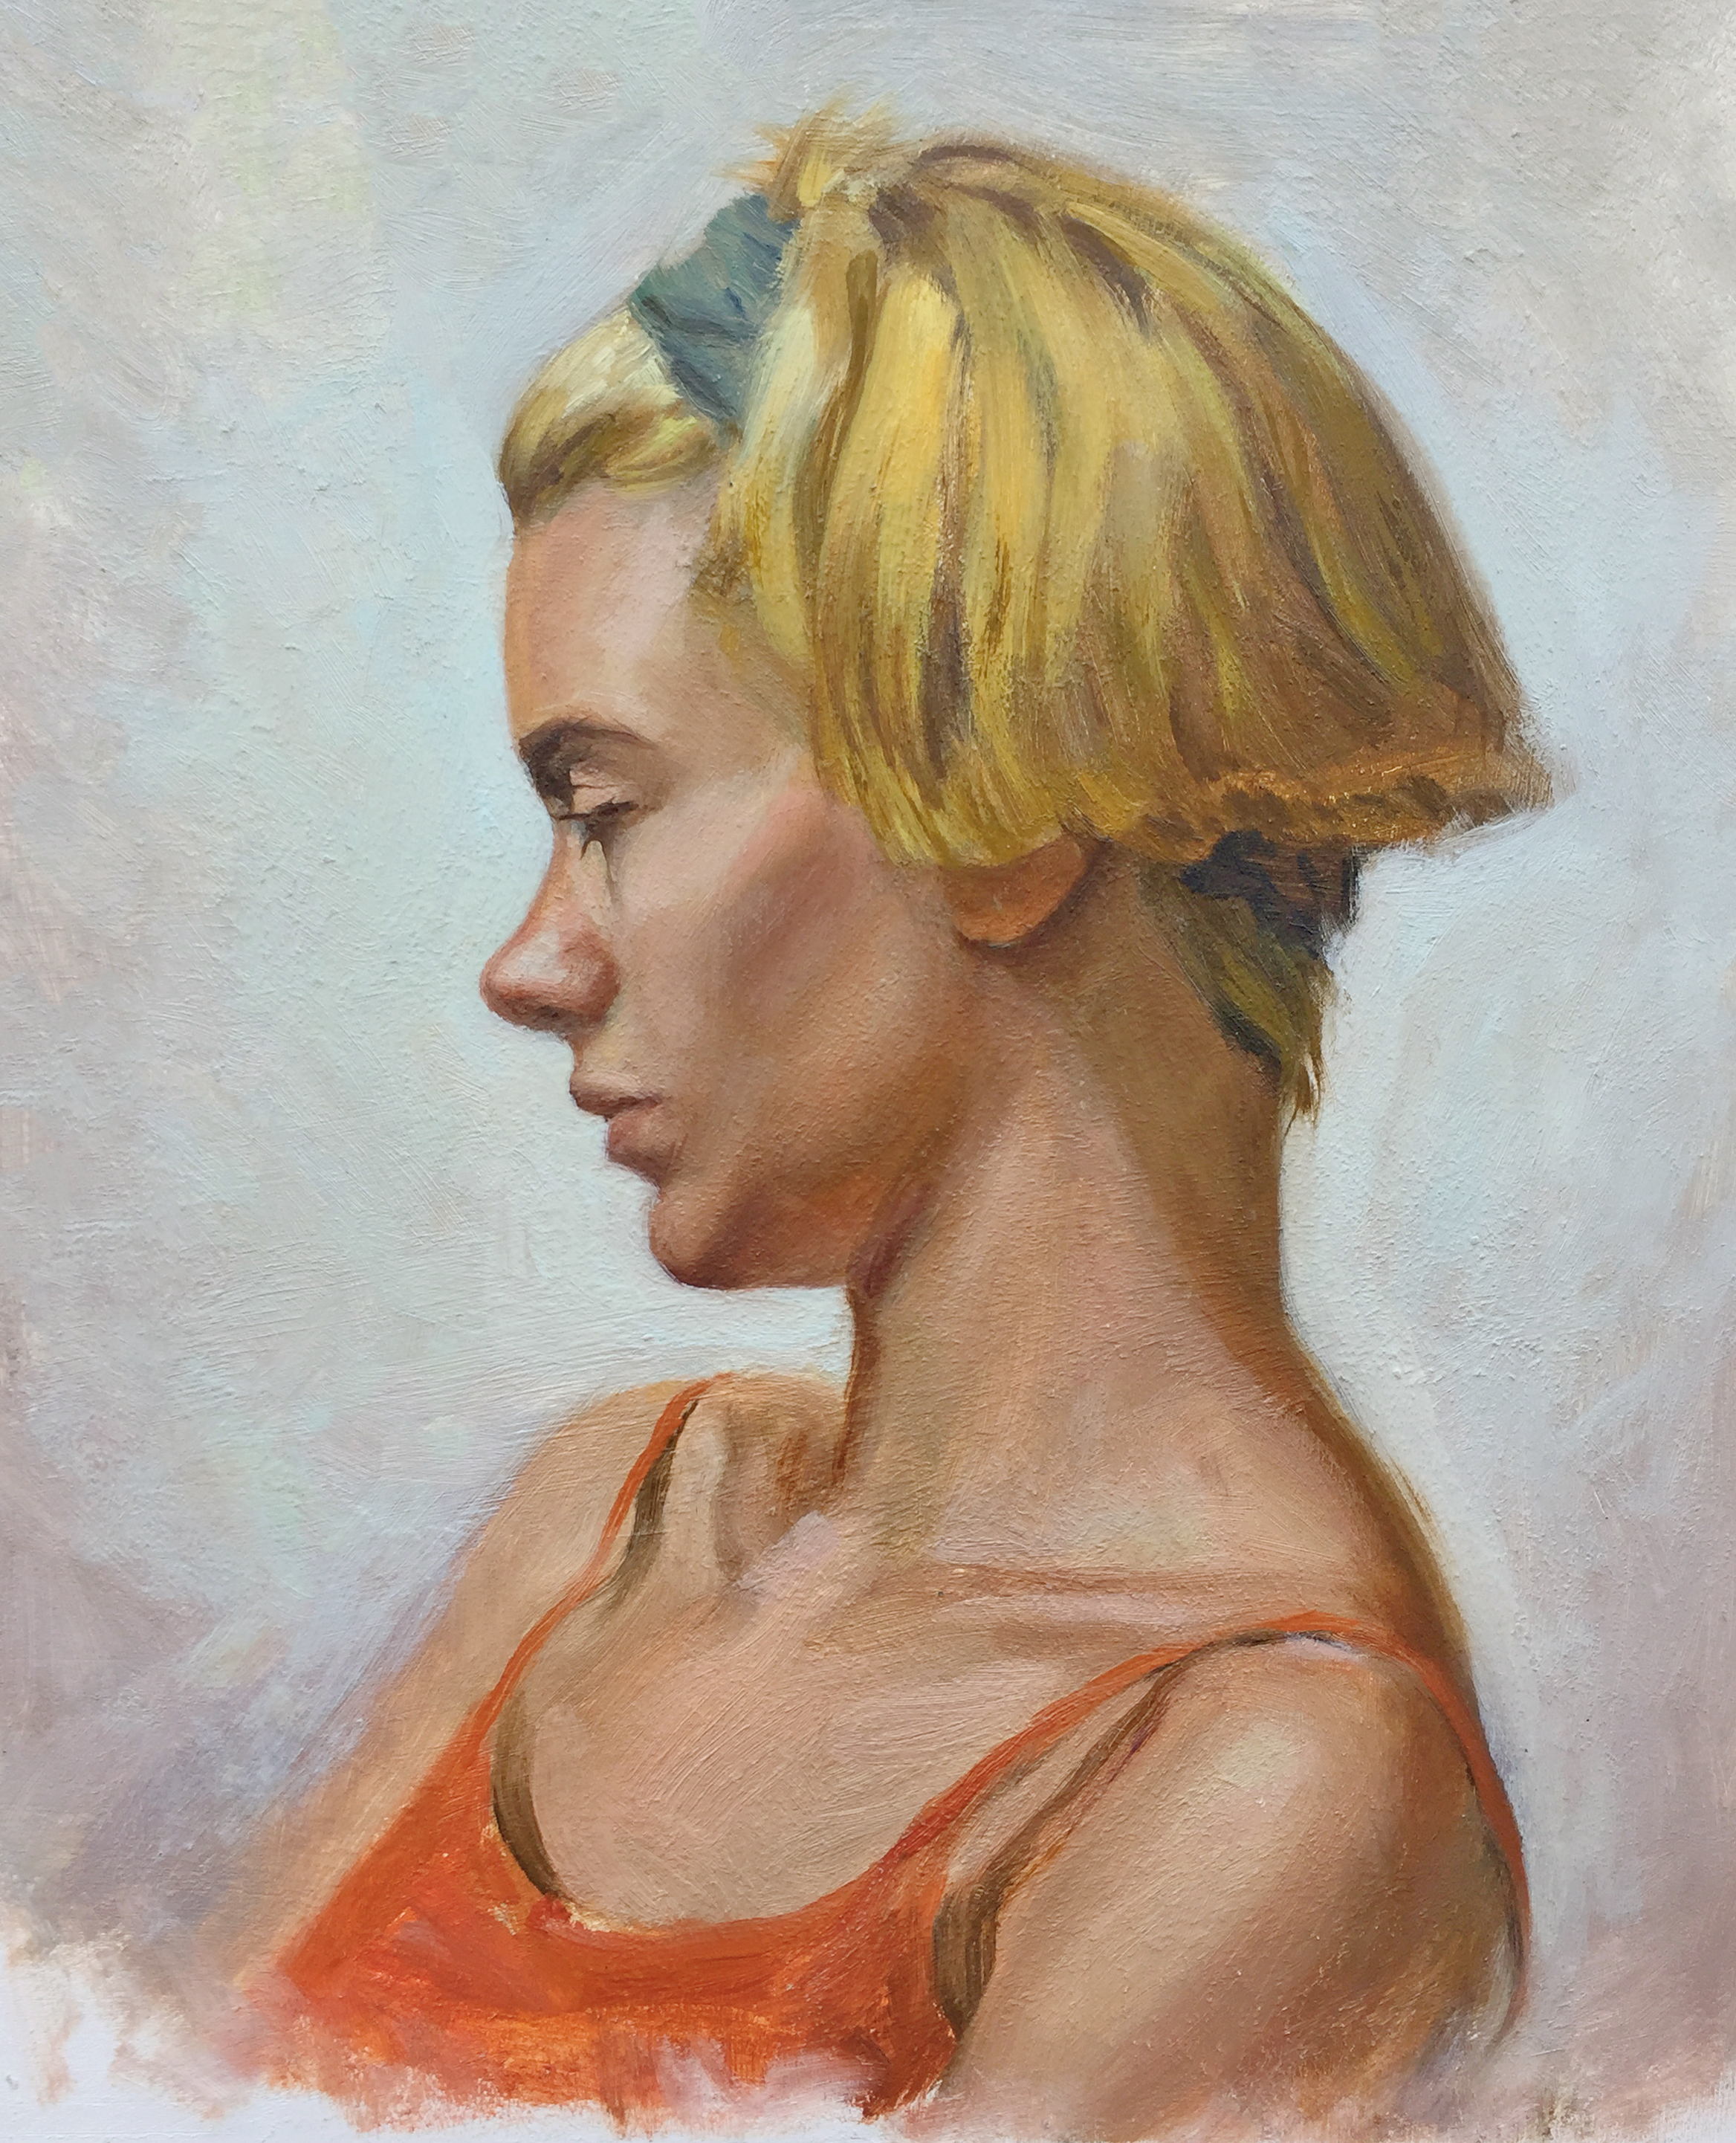 Life Study, Oil on board